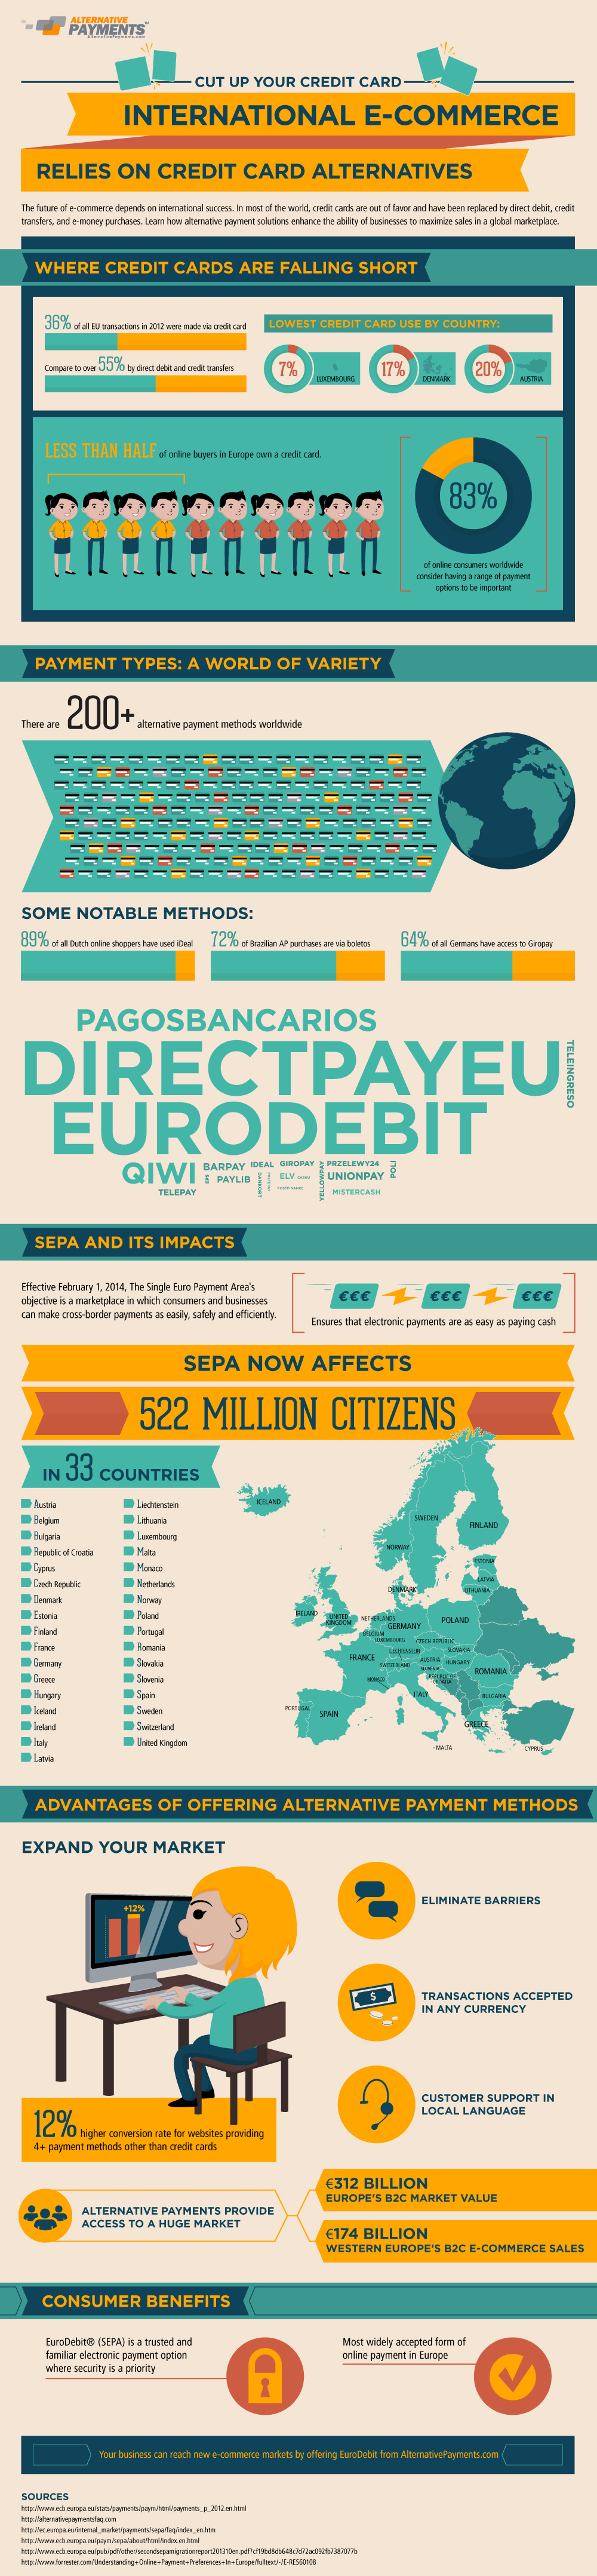 International E-commerce - Alternative Payments Infographic